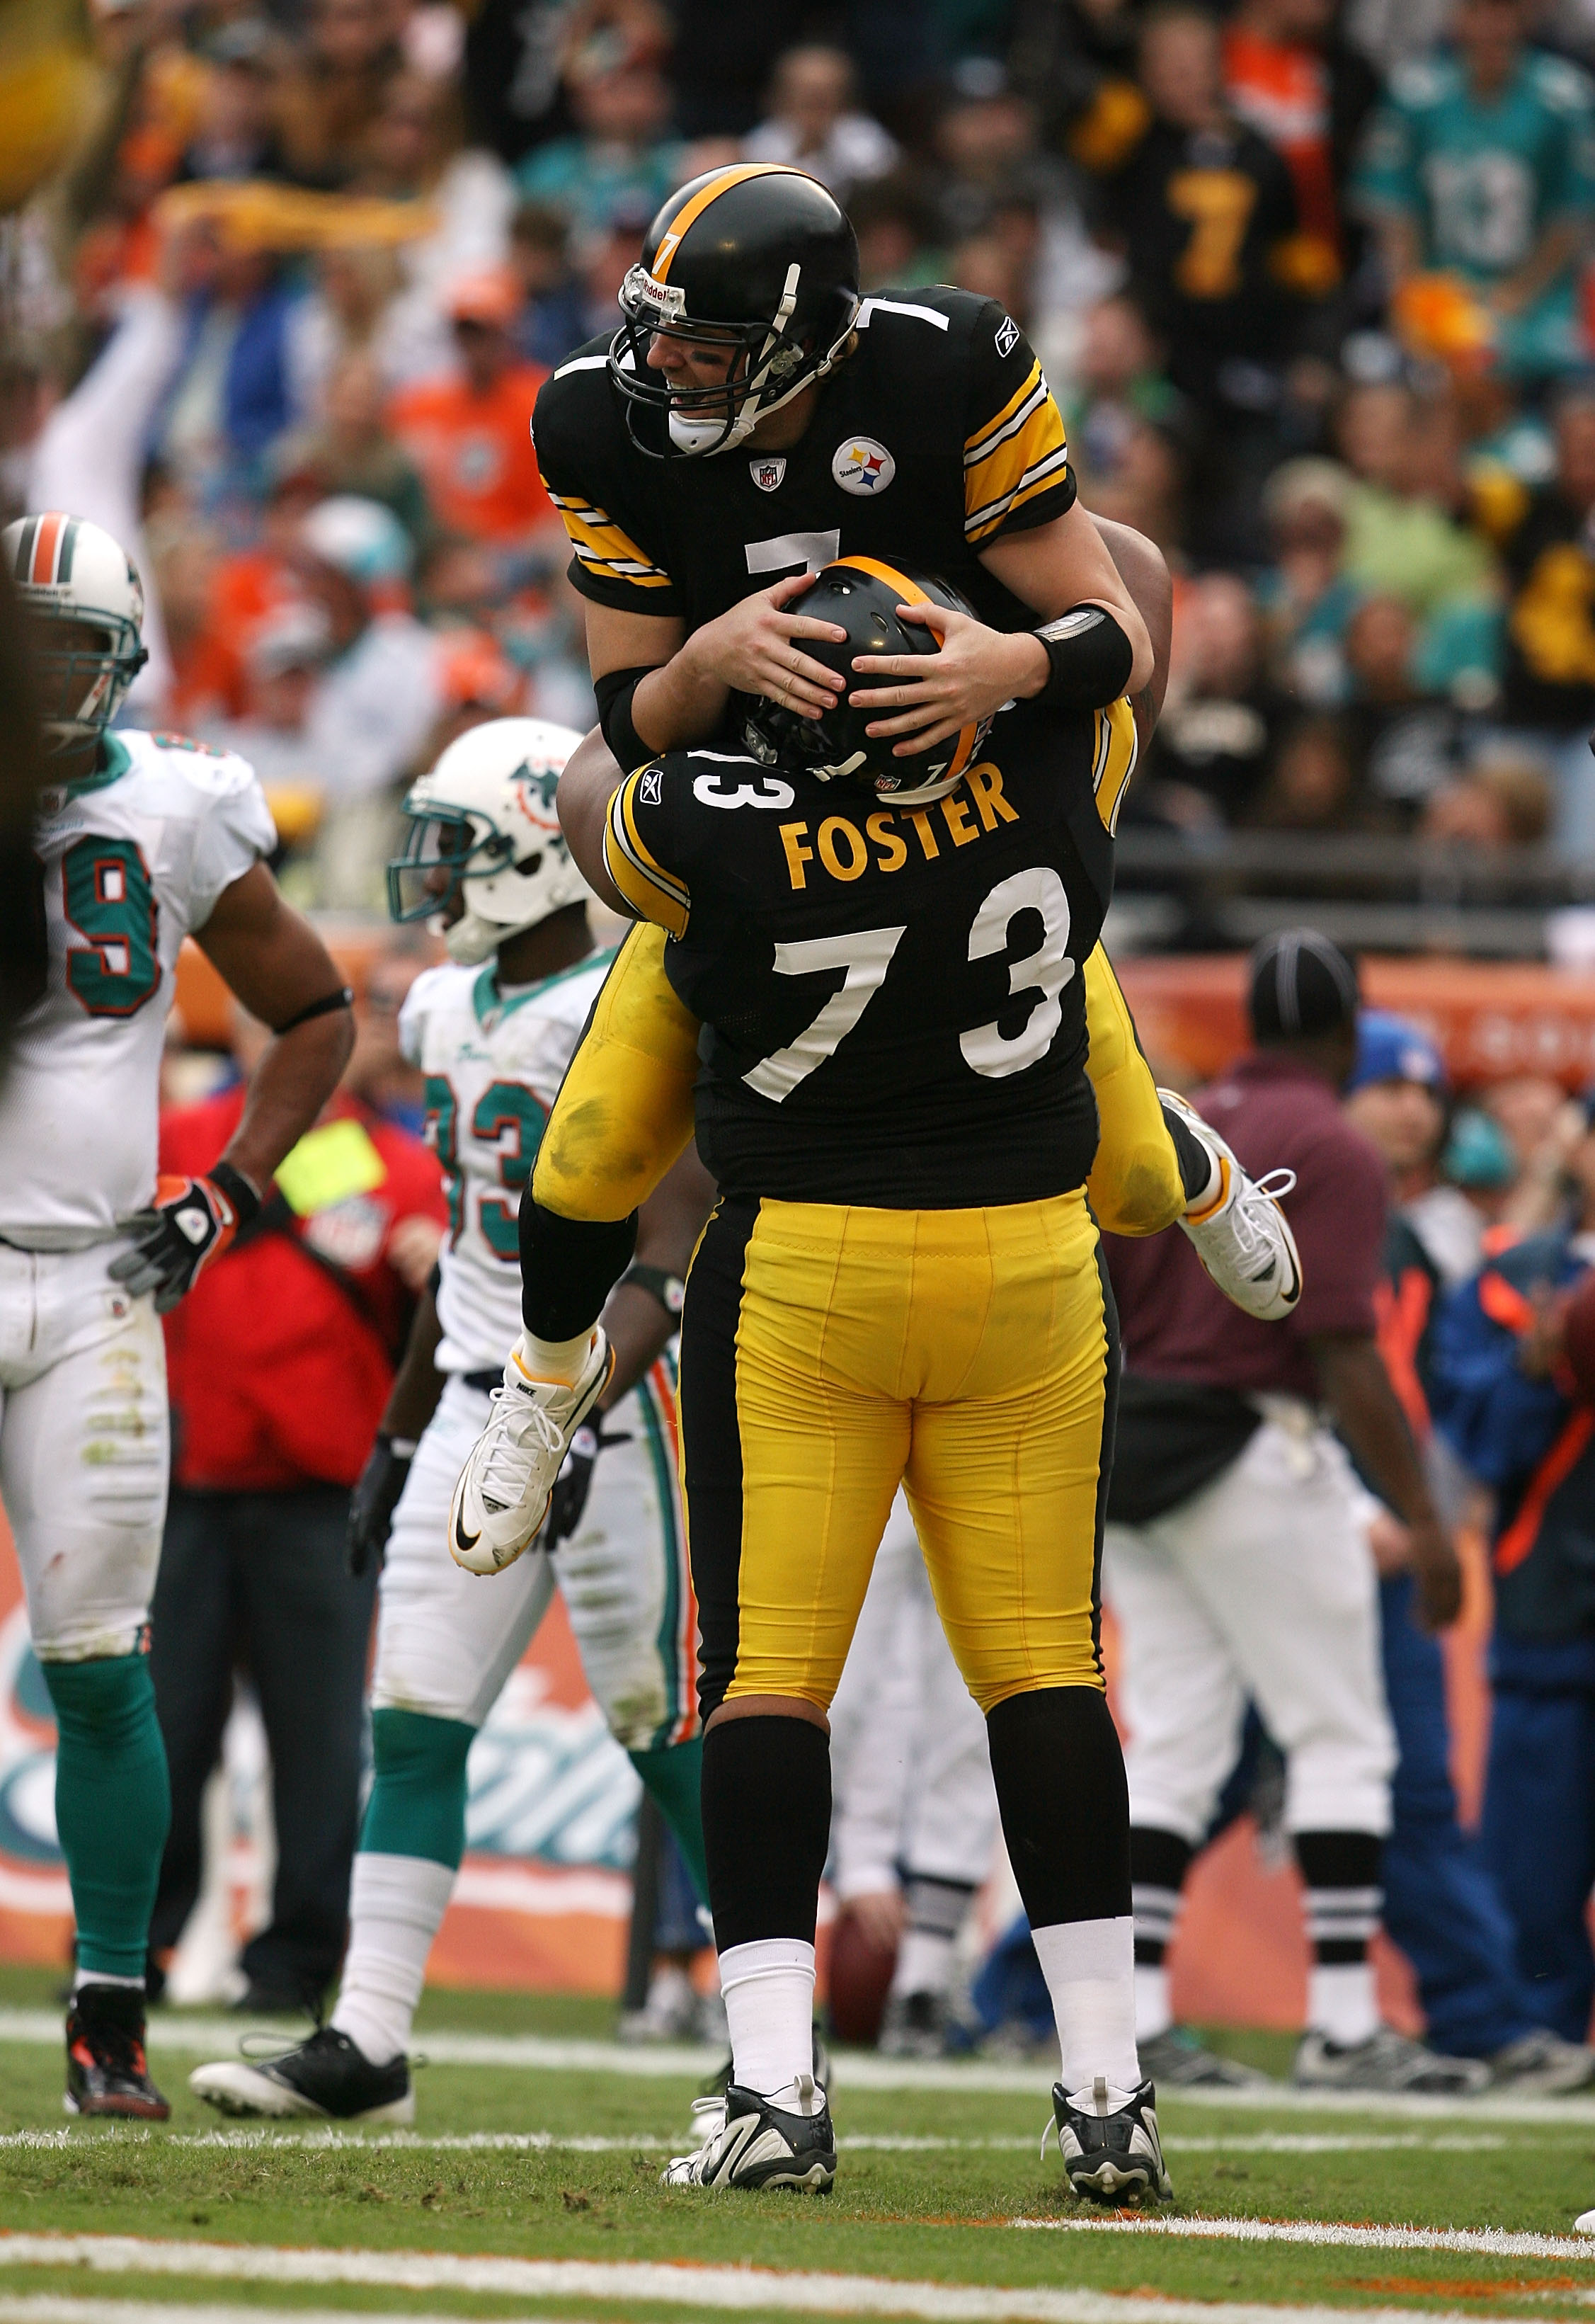 MIAMI - JANUARY 03:  Quarterback Ben Roethlisberger #7 of the Pittsburgh Steelers is lifted into the air by offensive linemen Ramon Foster #73 after Roethlisberger's touchdown pass to tight end Heath Miller #83 in the third quarter against the Miami Dolph